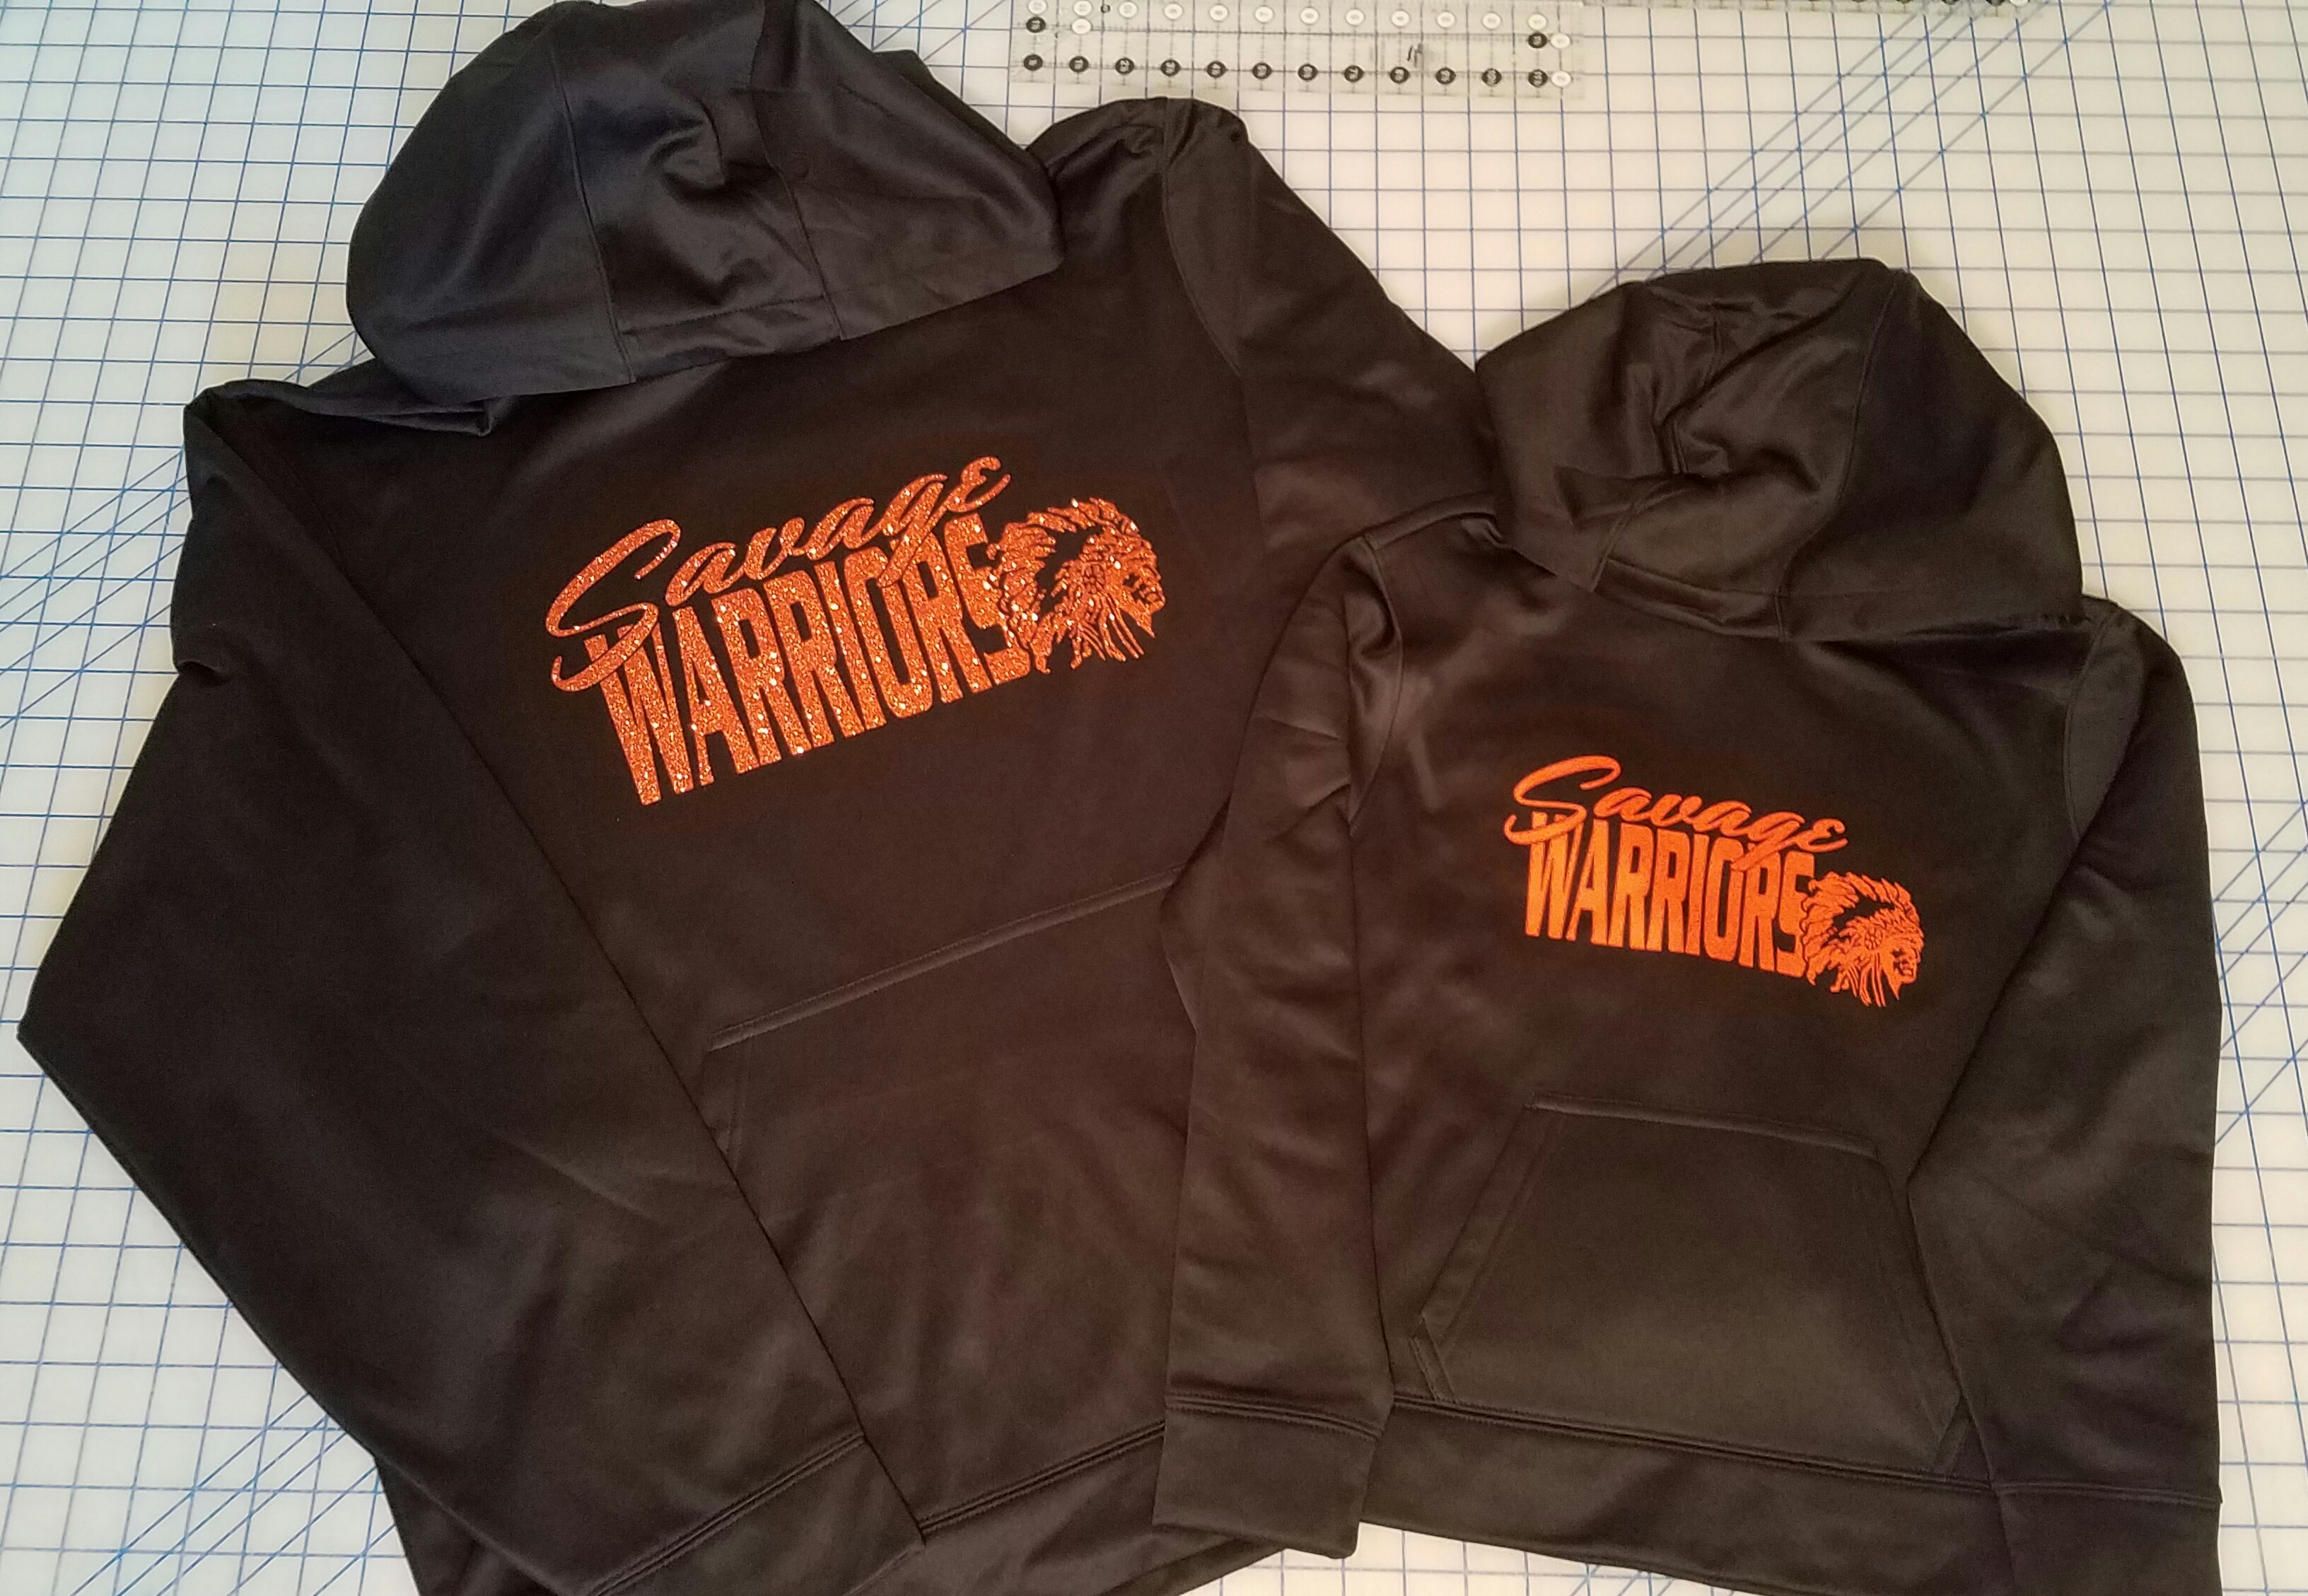 Designed Team Graphic on Hoodie